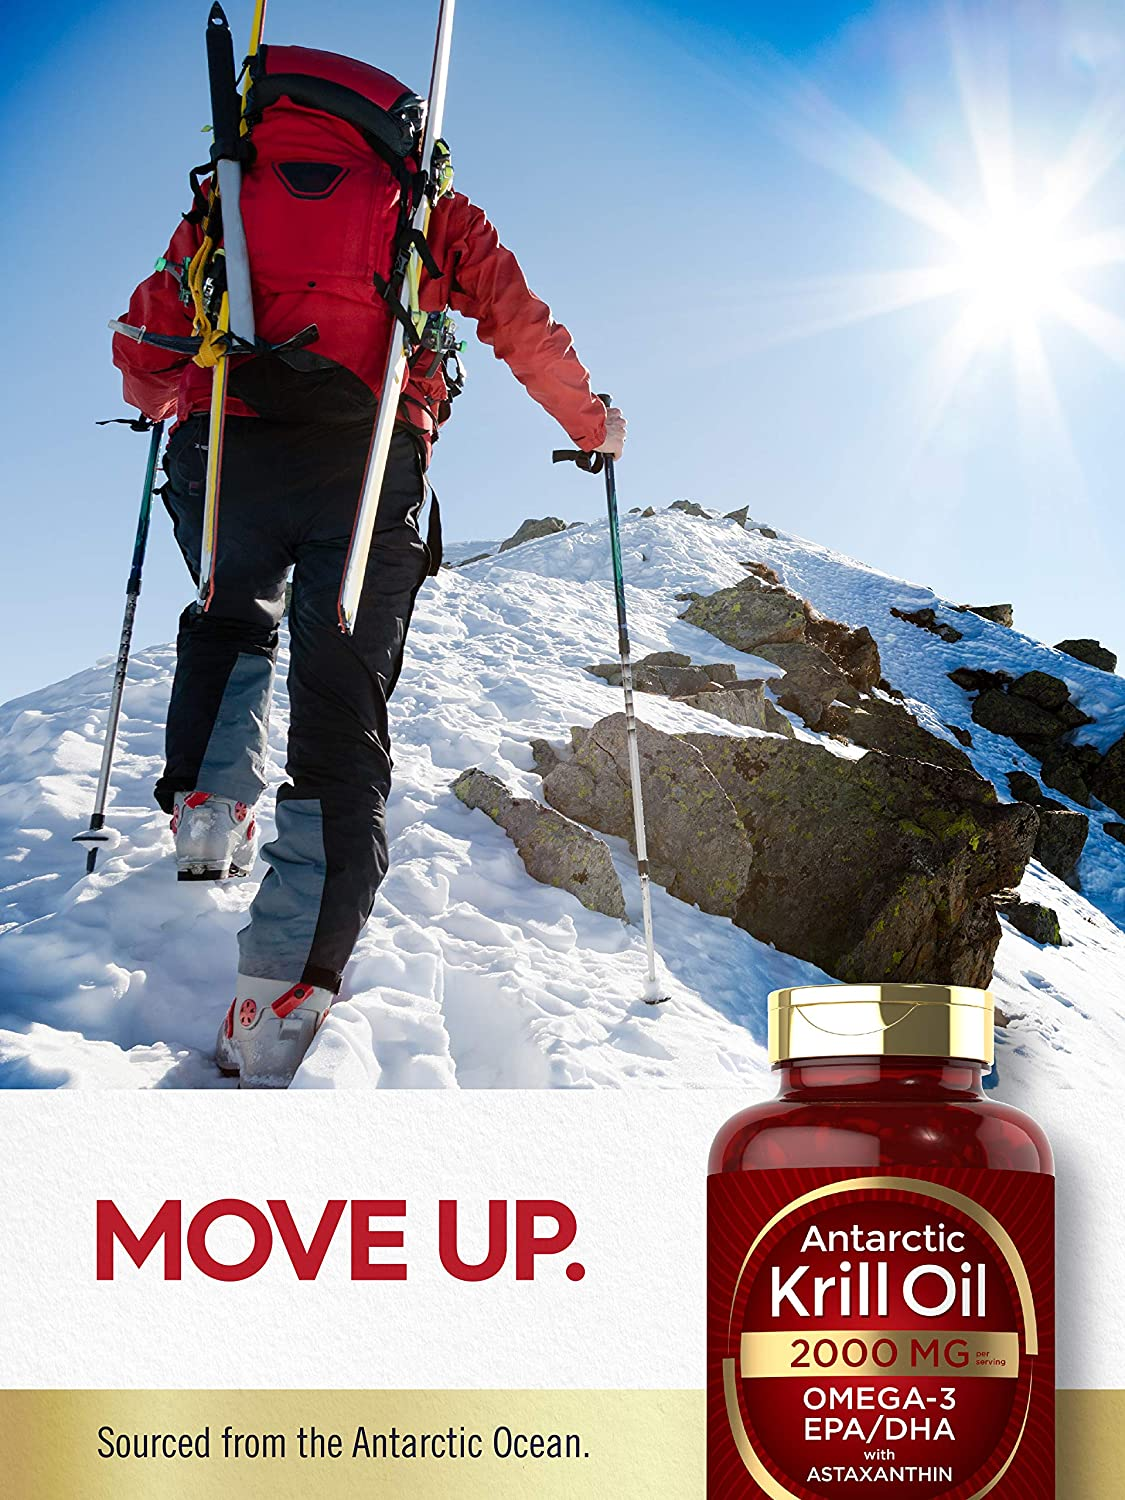 Antarctic Krill Oil 2000 mg 120 Softgels   Omega-3 EPA, DHA, with Astaxanthin Supplement Sourced from Red Krill   Maximum Strength   Laboratory Tested